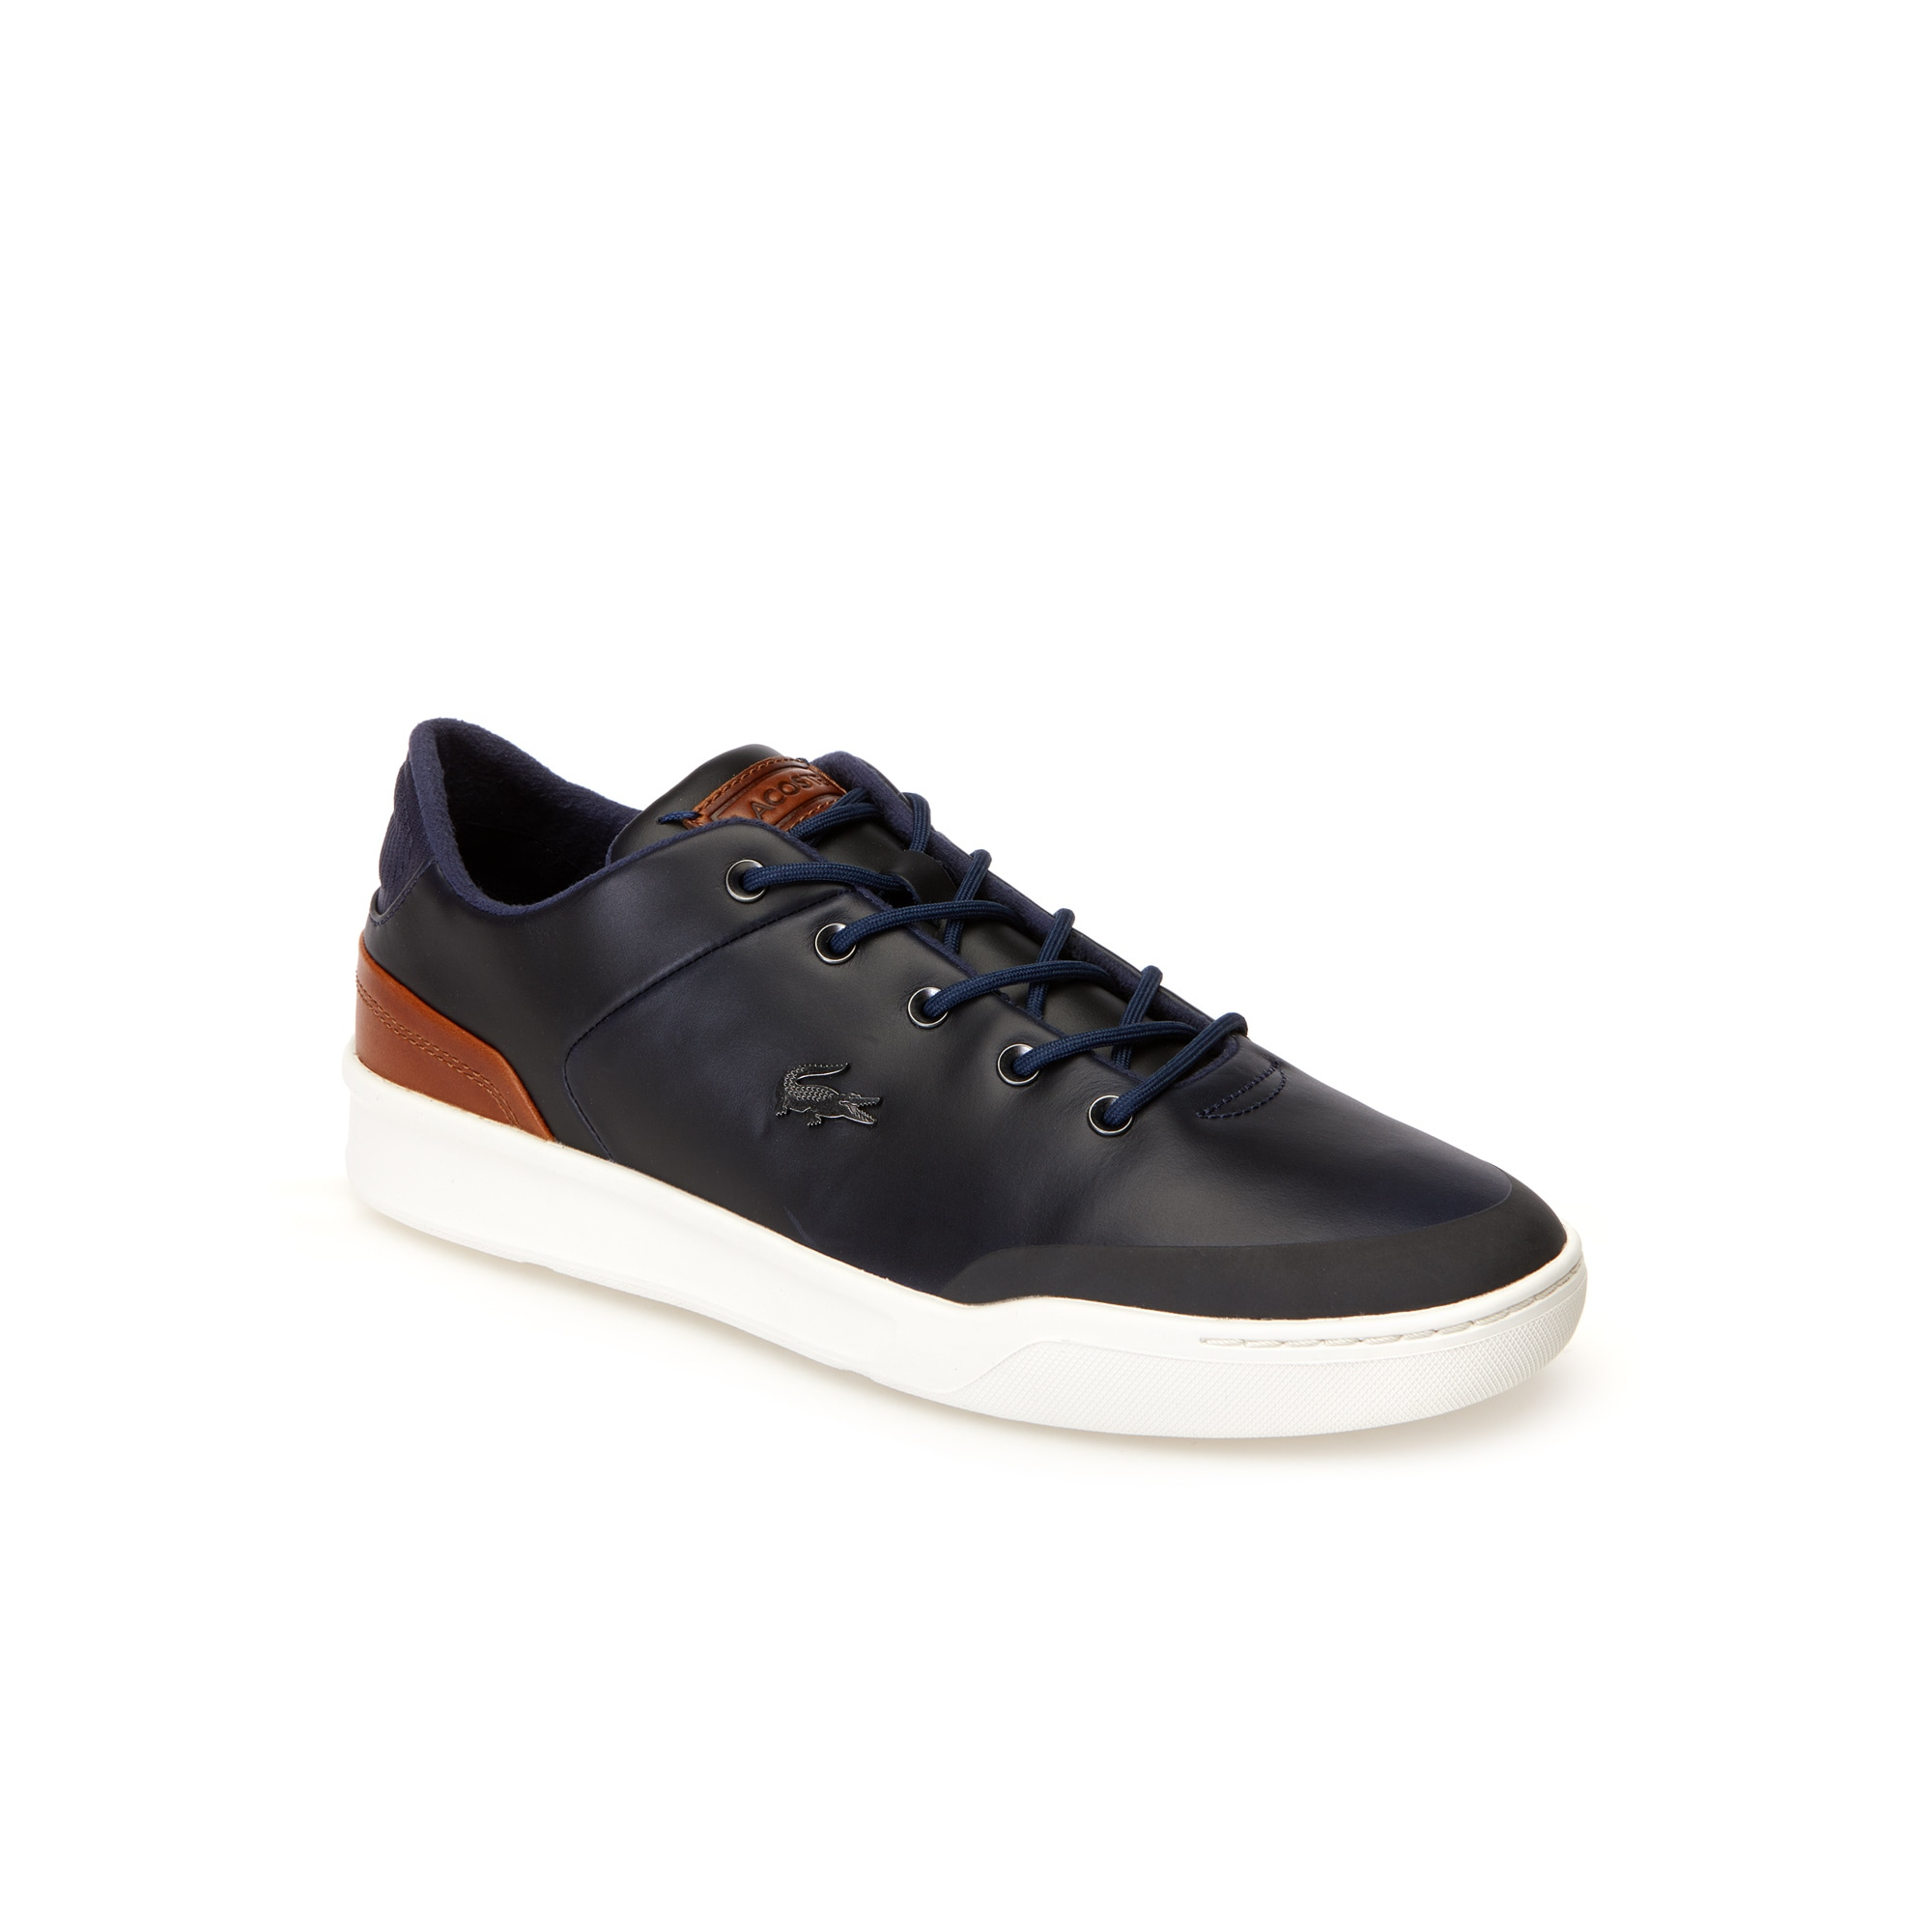 Men's Explorateur Classic L Aniline Leather Trainers